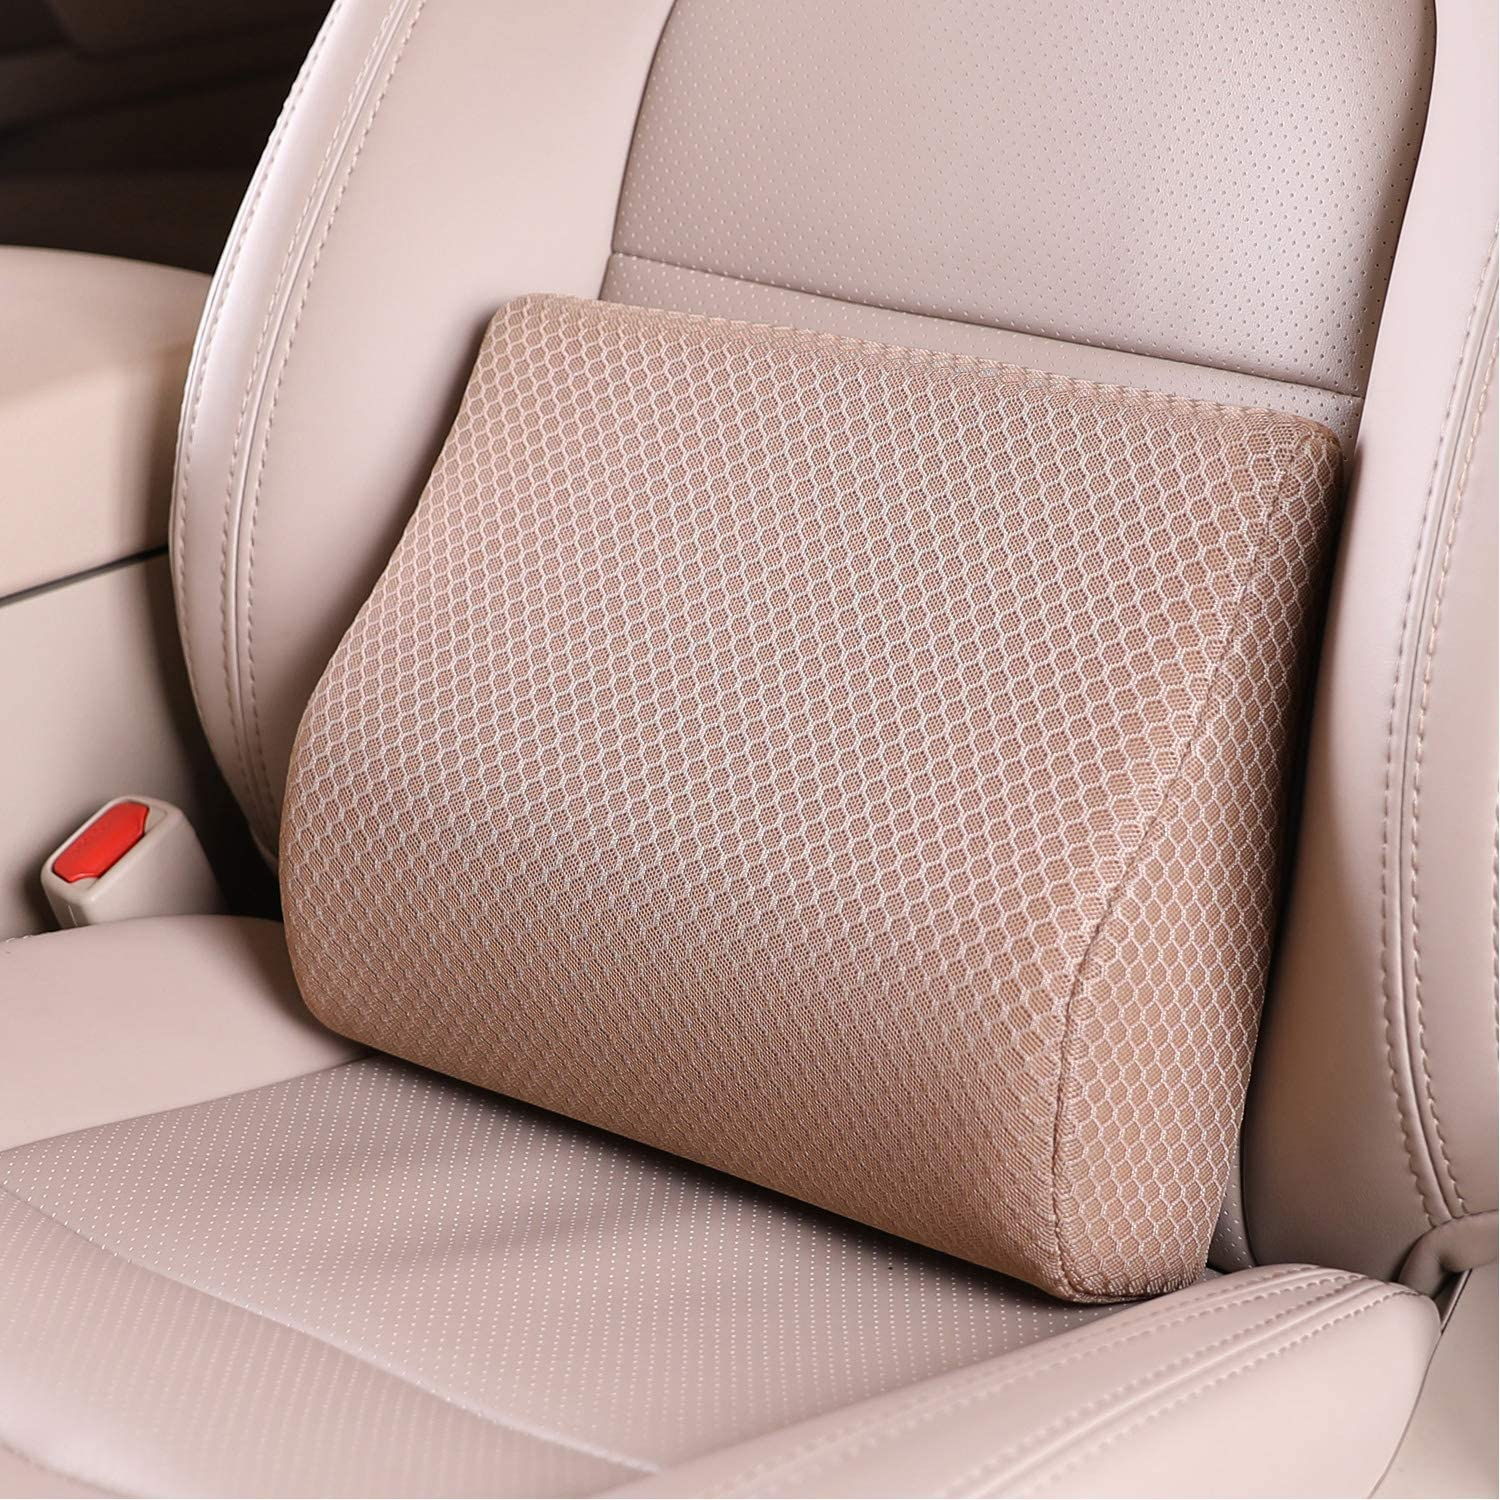 TISHIJIE Memory Foam Lumbar Support Pillow for Car - Mid/Lower Back Support Cushion - for Car Seat, Office Chair, Recliner Etc. (Beige)